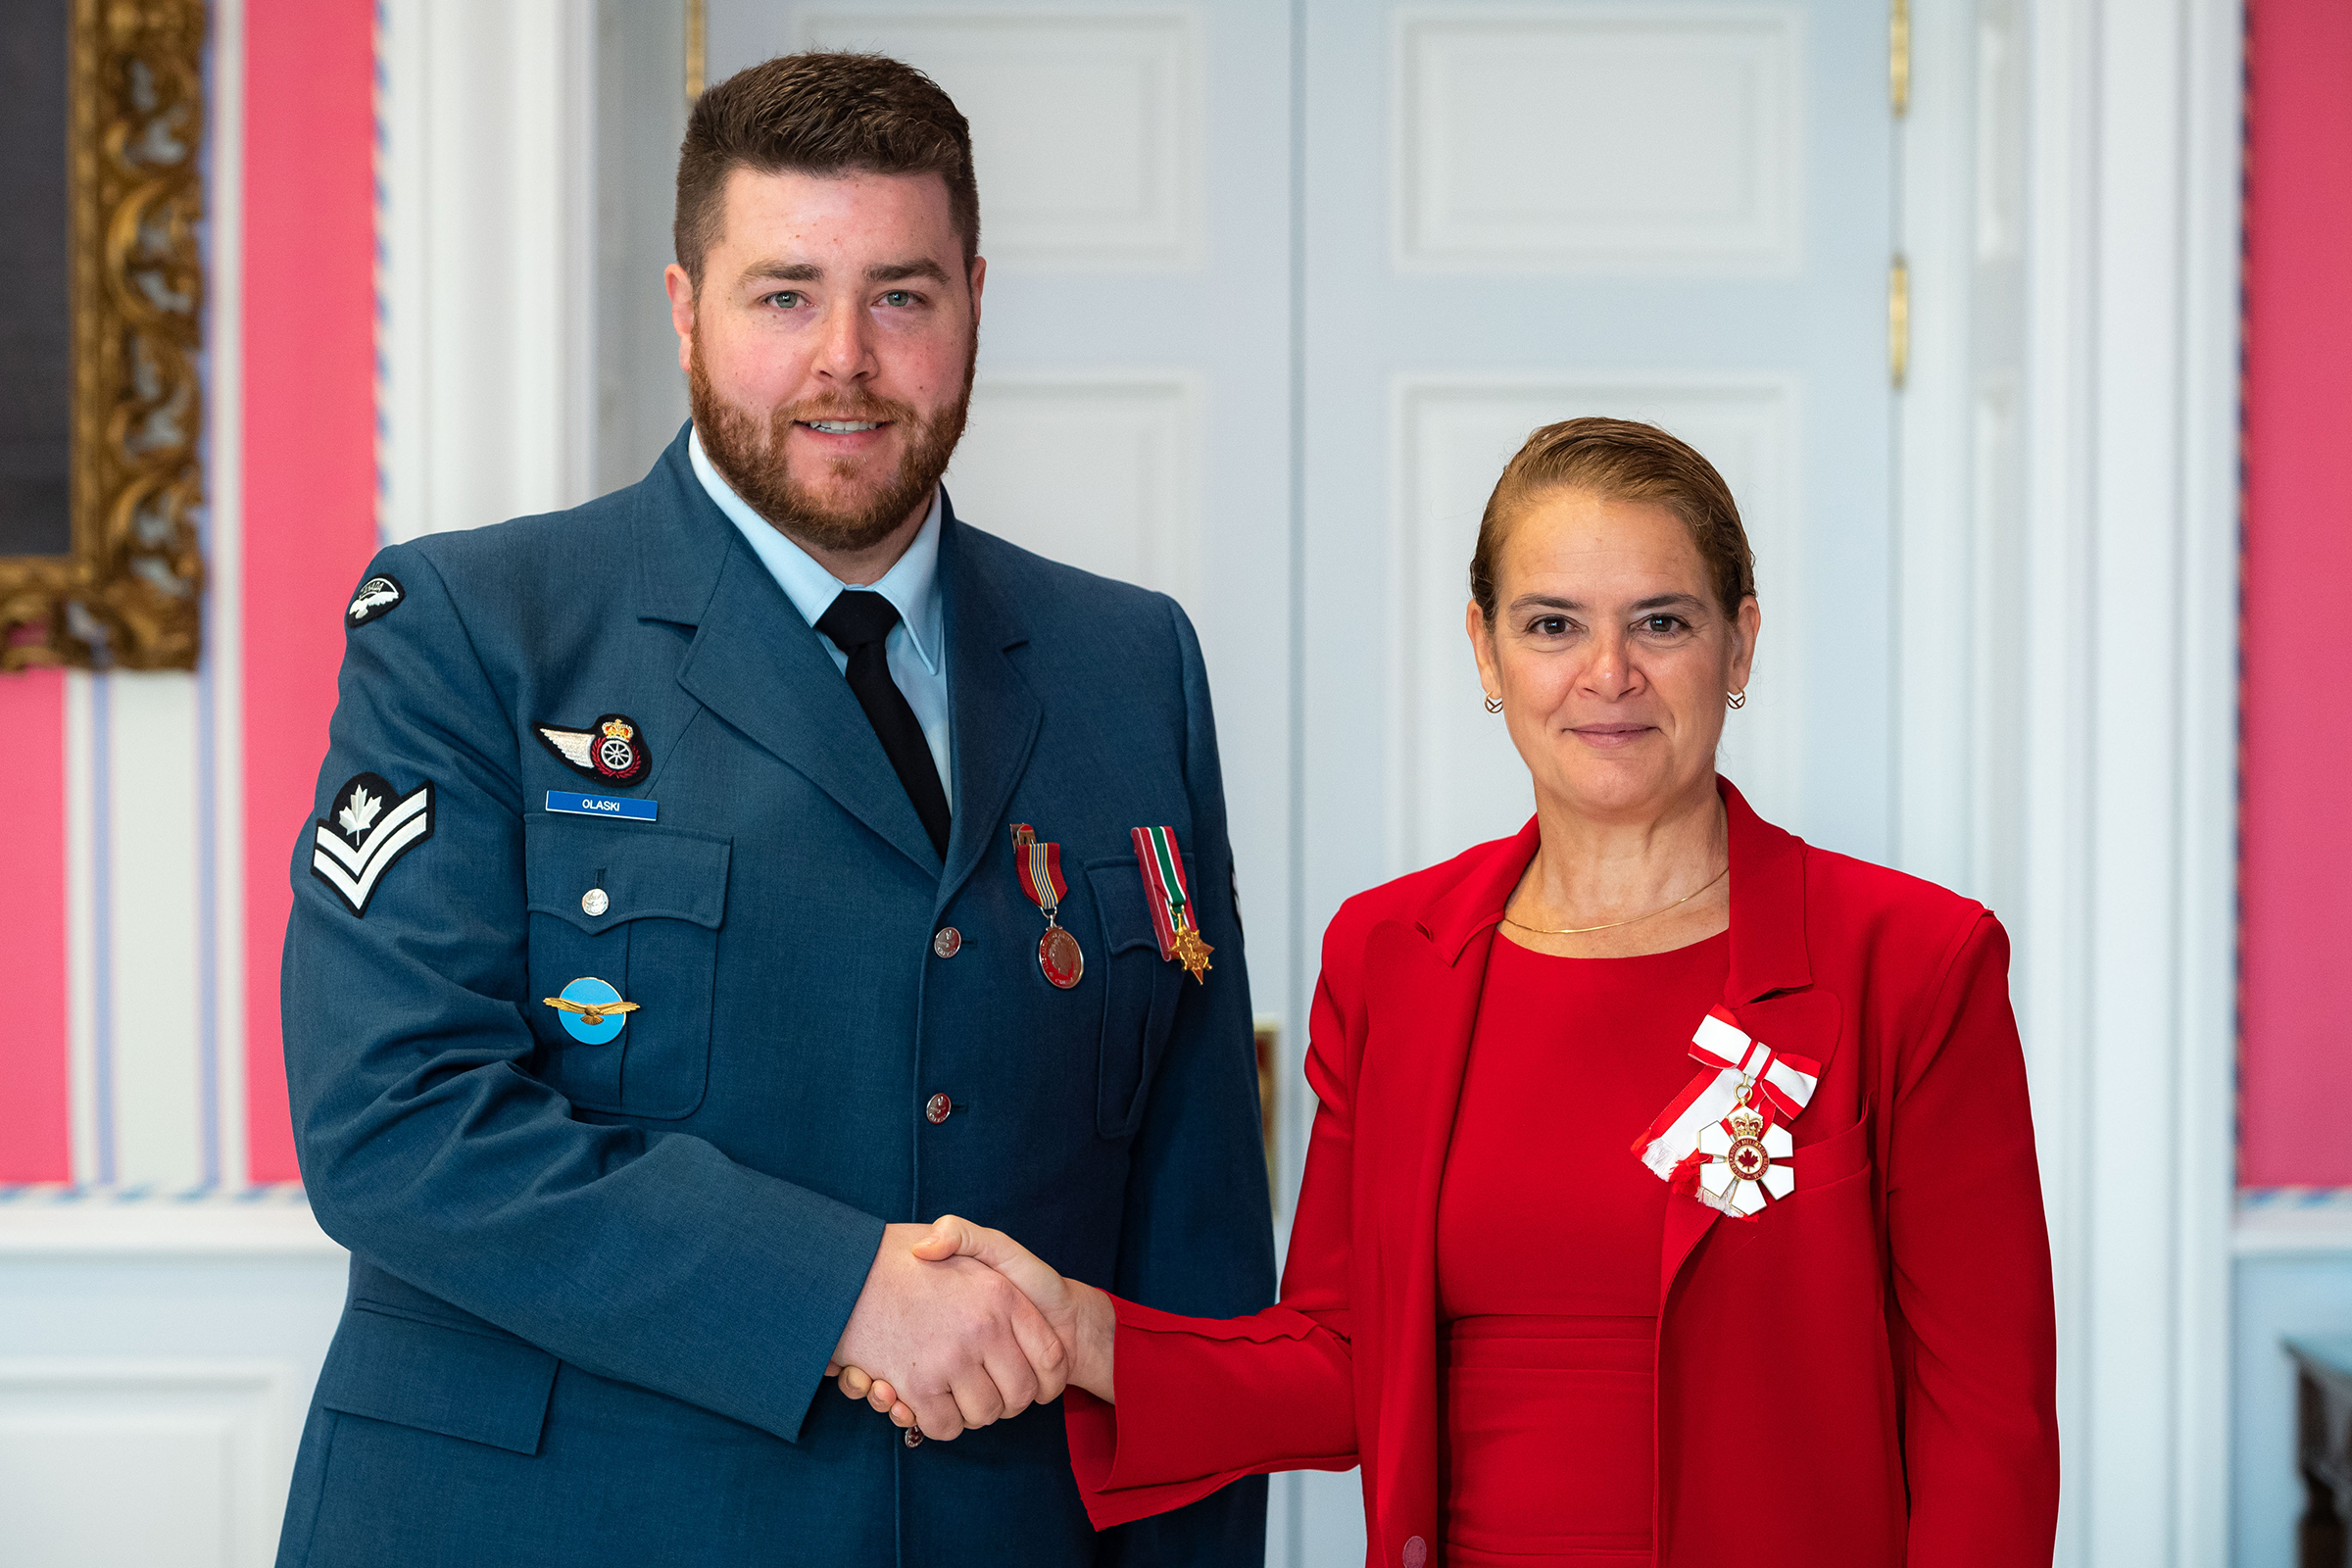 Governor General and Commander-in-Chief of Canada Julie Payette presents Master Corporal Joeseph Kyle Olaski with the Sovereign's Medal for Volunteers on November 12, 2019. PHOTO: Master Corporal Mathieu Gaudreault, GG06-2019-0257-123, © OSGG